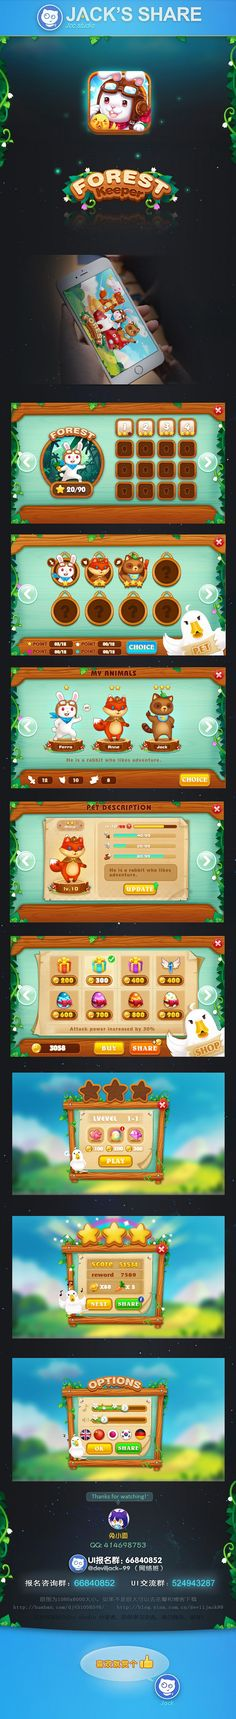 Jack - on Behance Kawaii Games, 2d Game Art, Game Gui, I Love Games, Game Props, Game Interface, Ui Design Inspiration, Mobile Game, Game Character